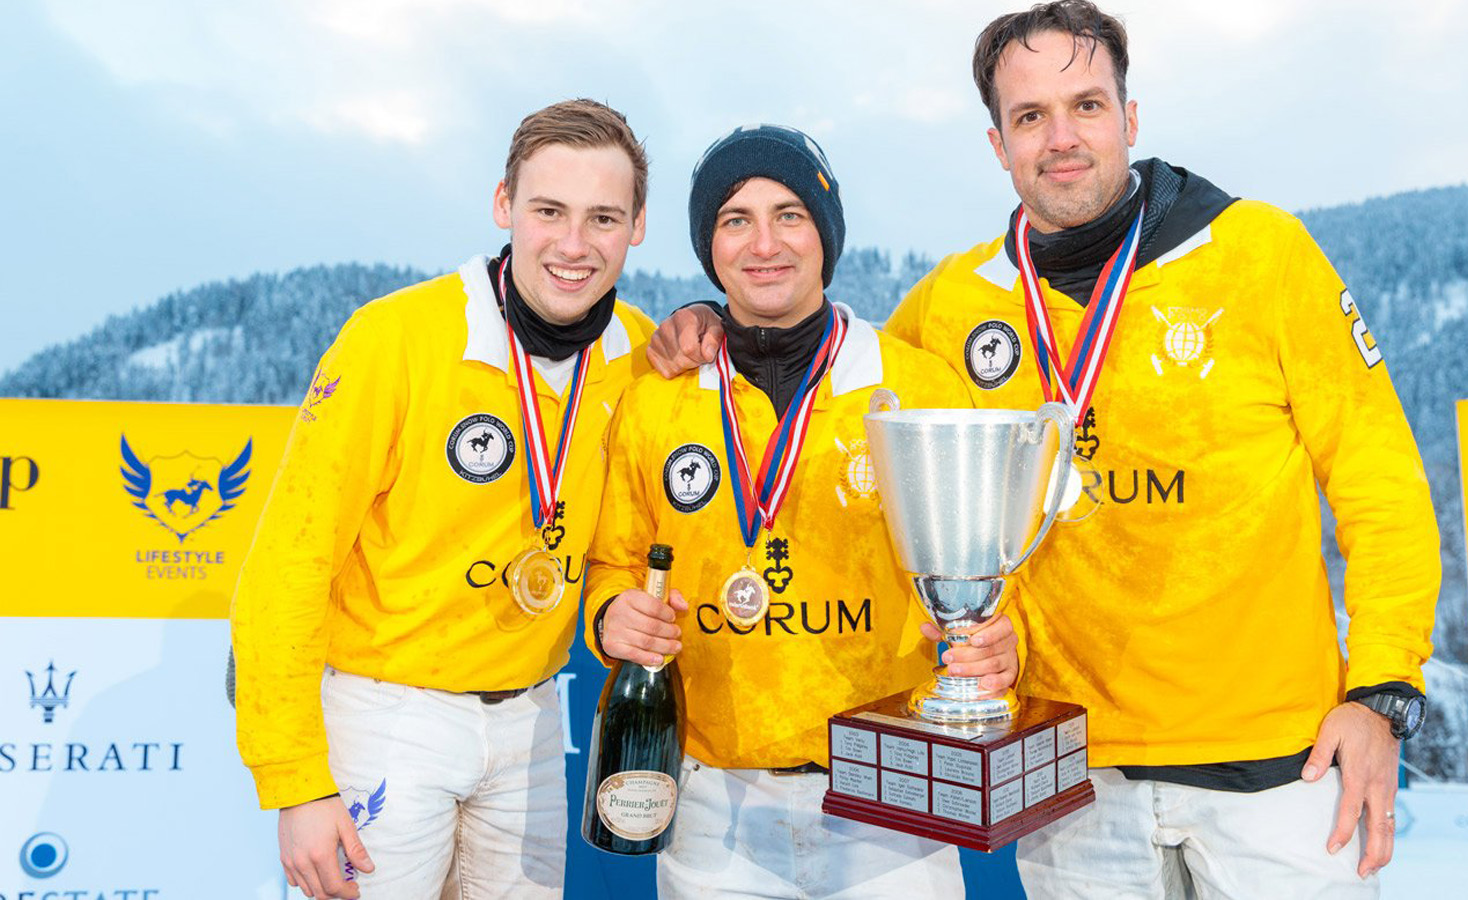 snow polo world cup, polo in snow, Bendura bank team , corum